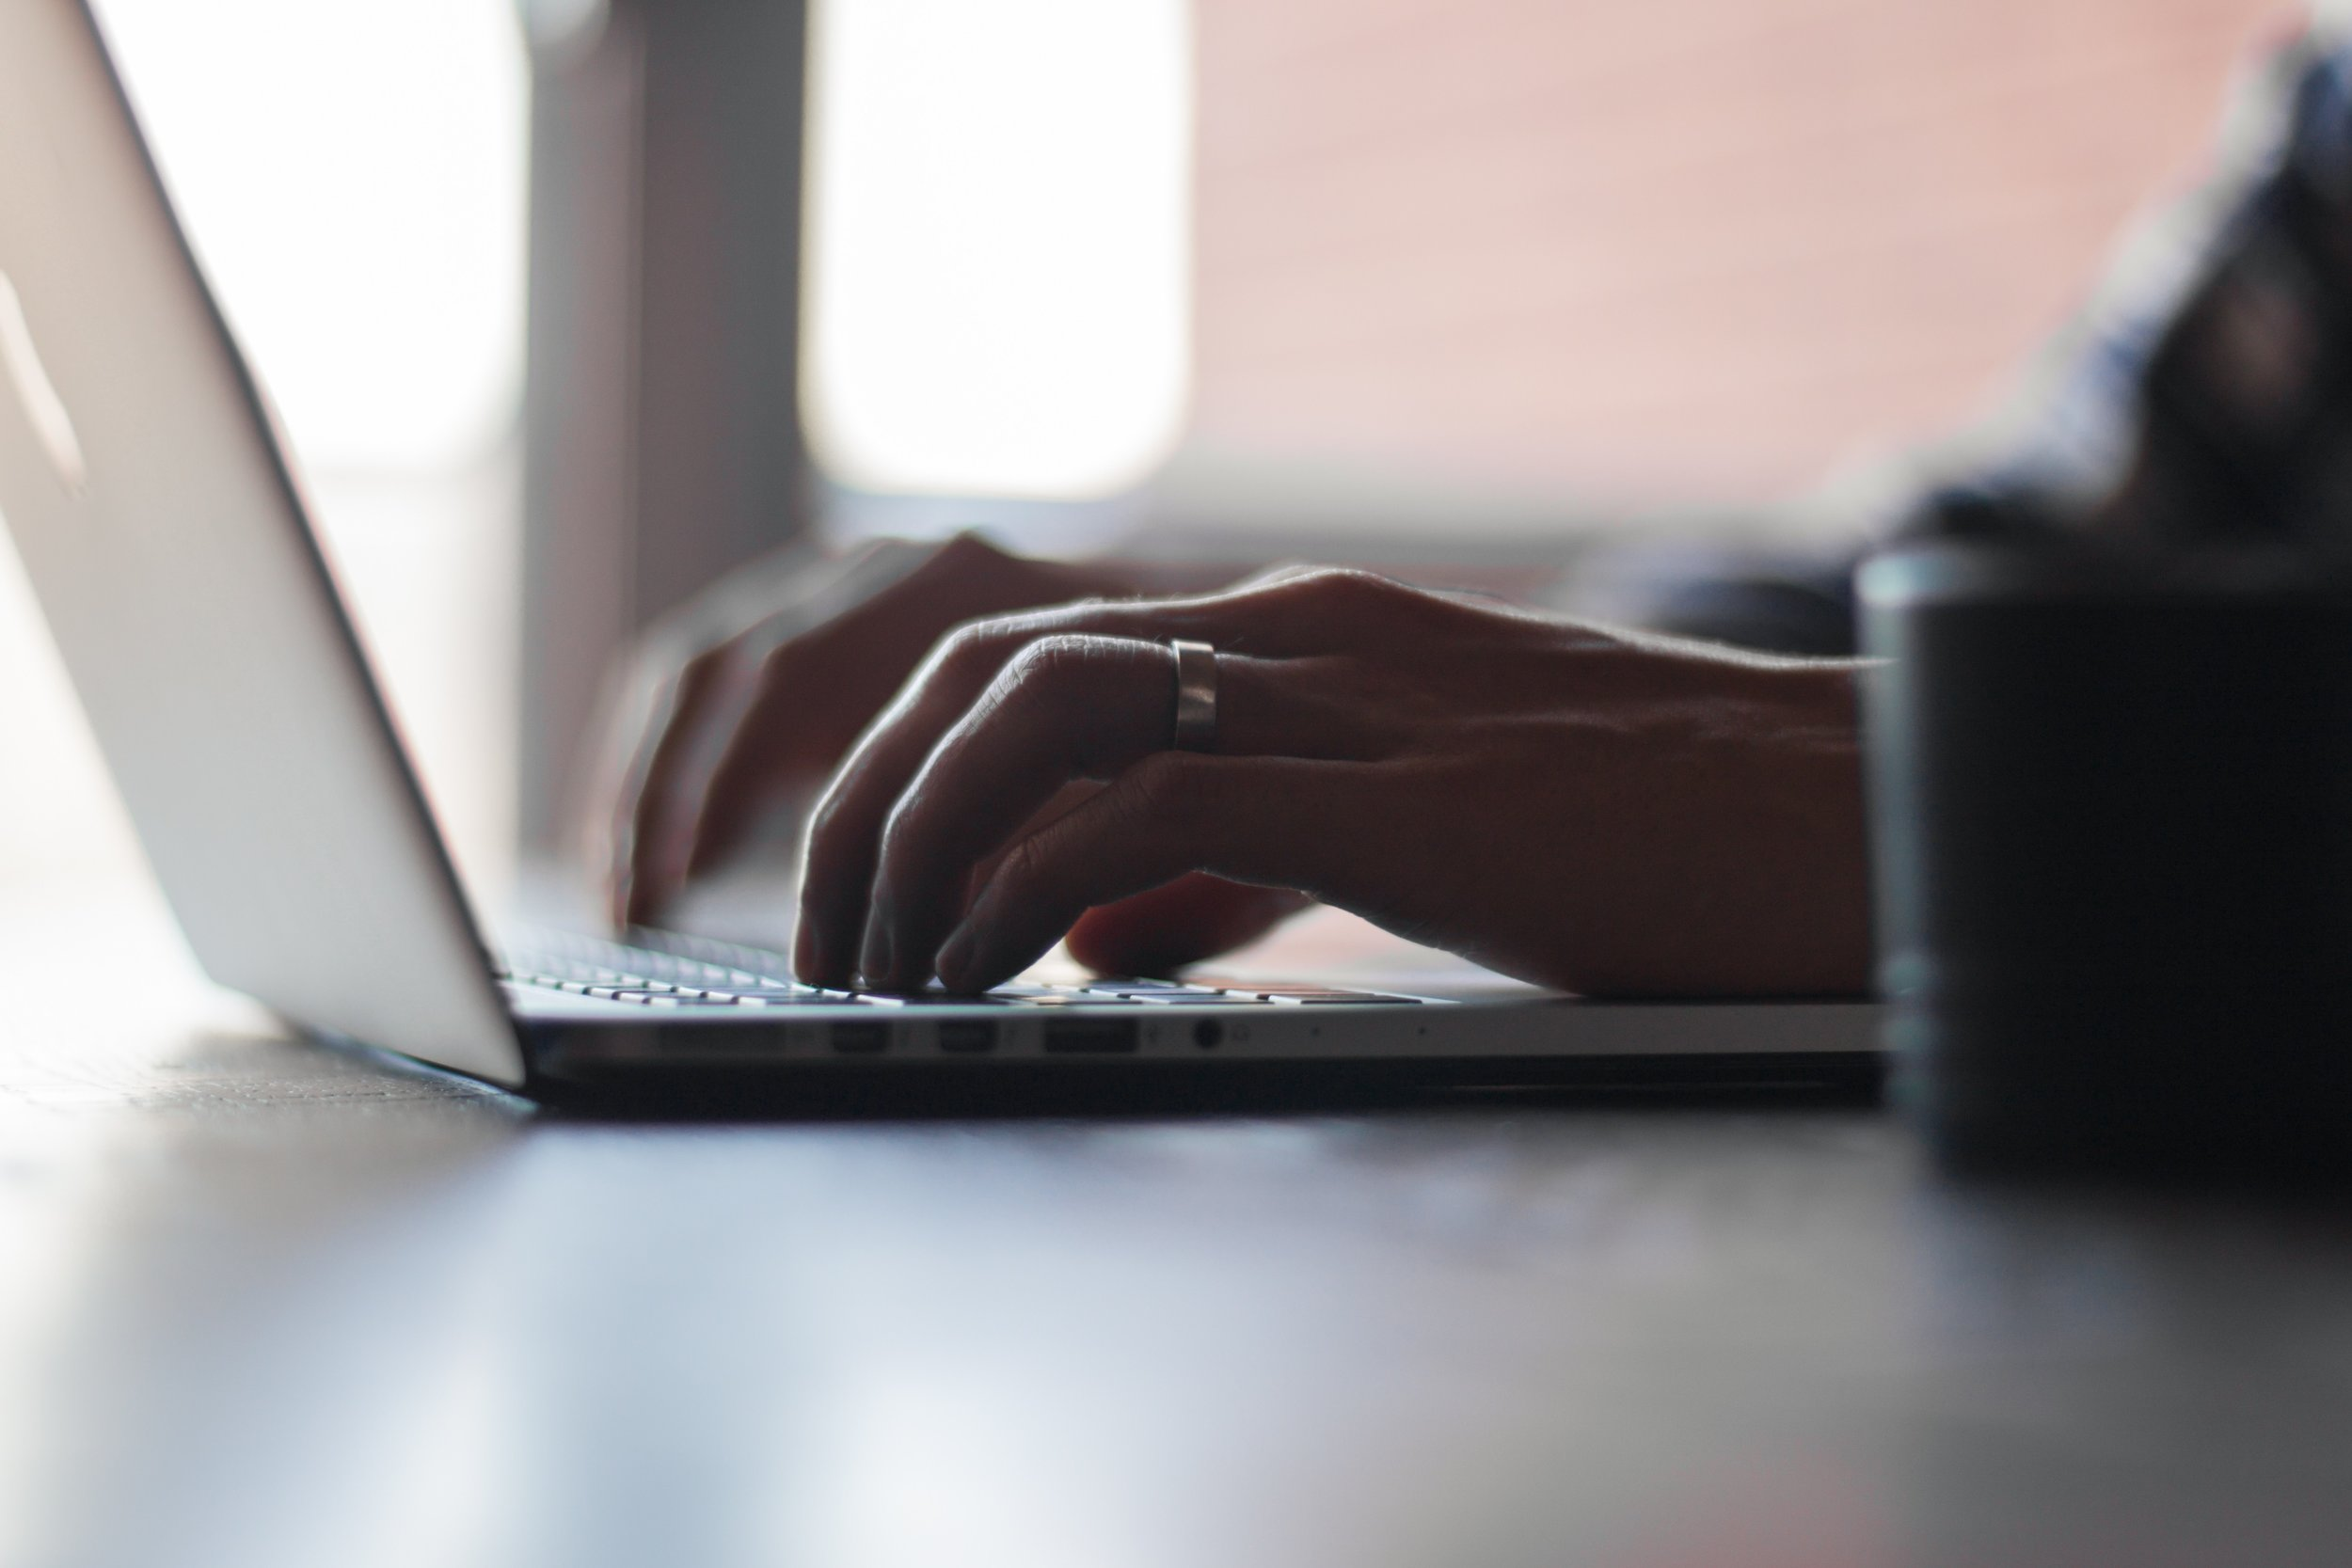 Best Practices for Work and Personal Online Security - As more people and businesses use online services, more entities become available for cyber criminals and hackers to target.